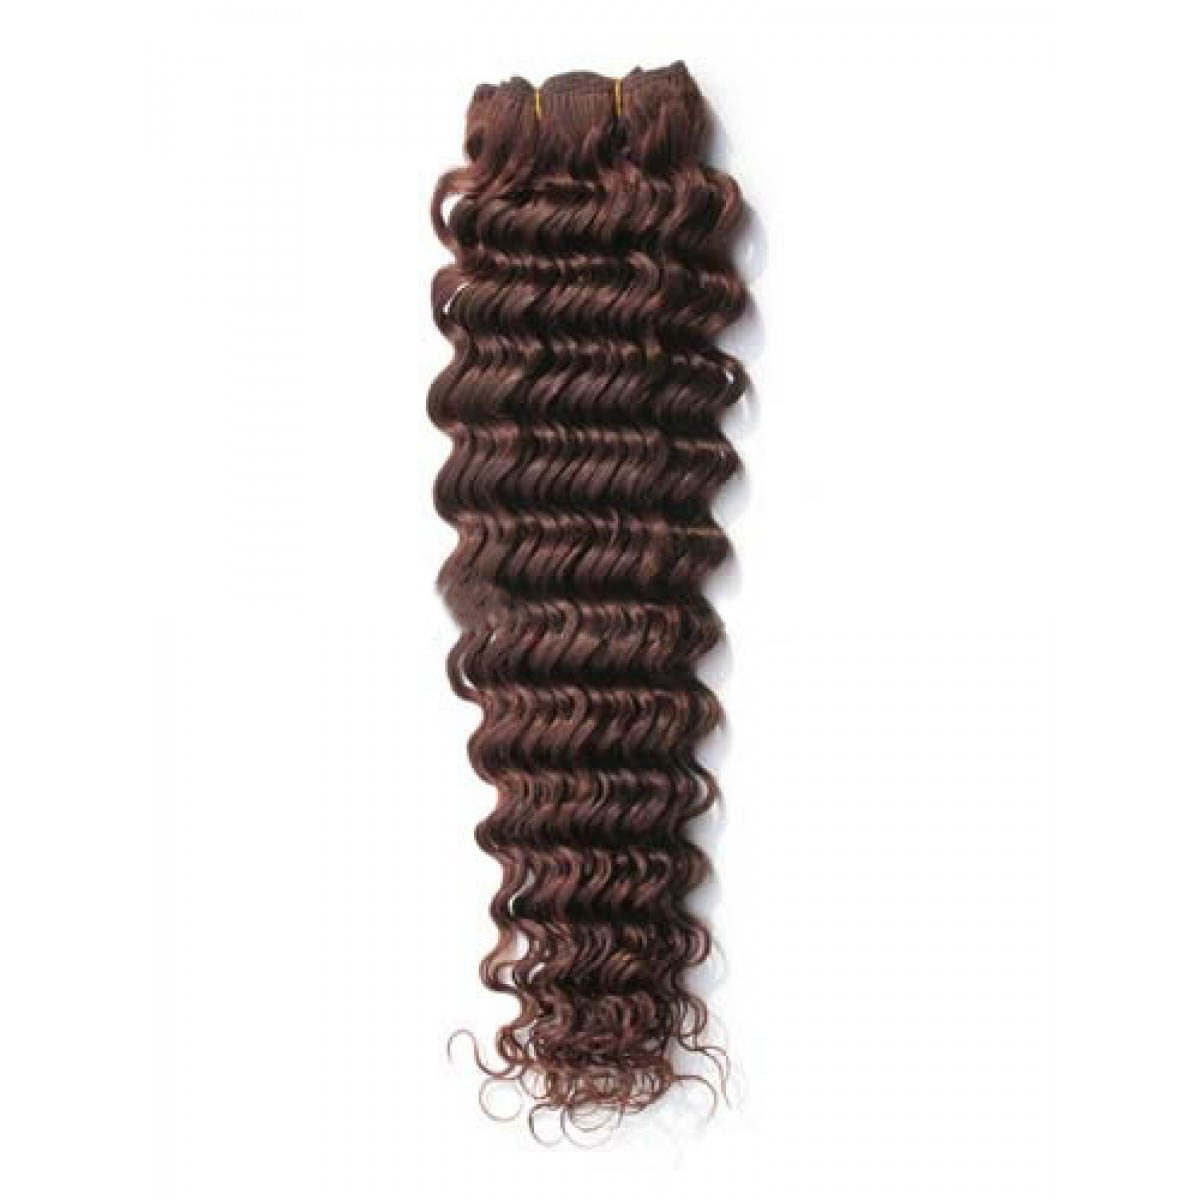 16 Inch 4 Medium Brown Deep Wave Indian Remy Hair Wefts